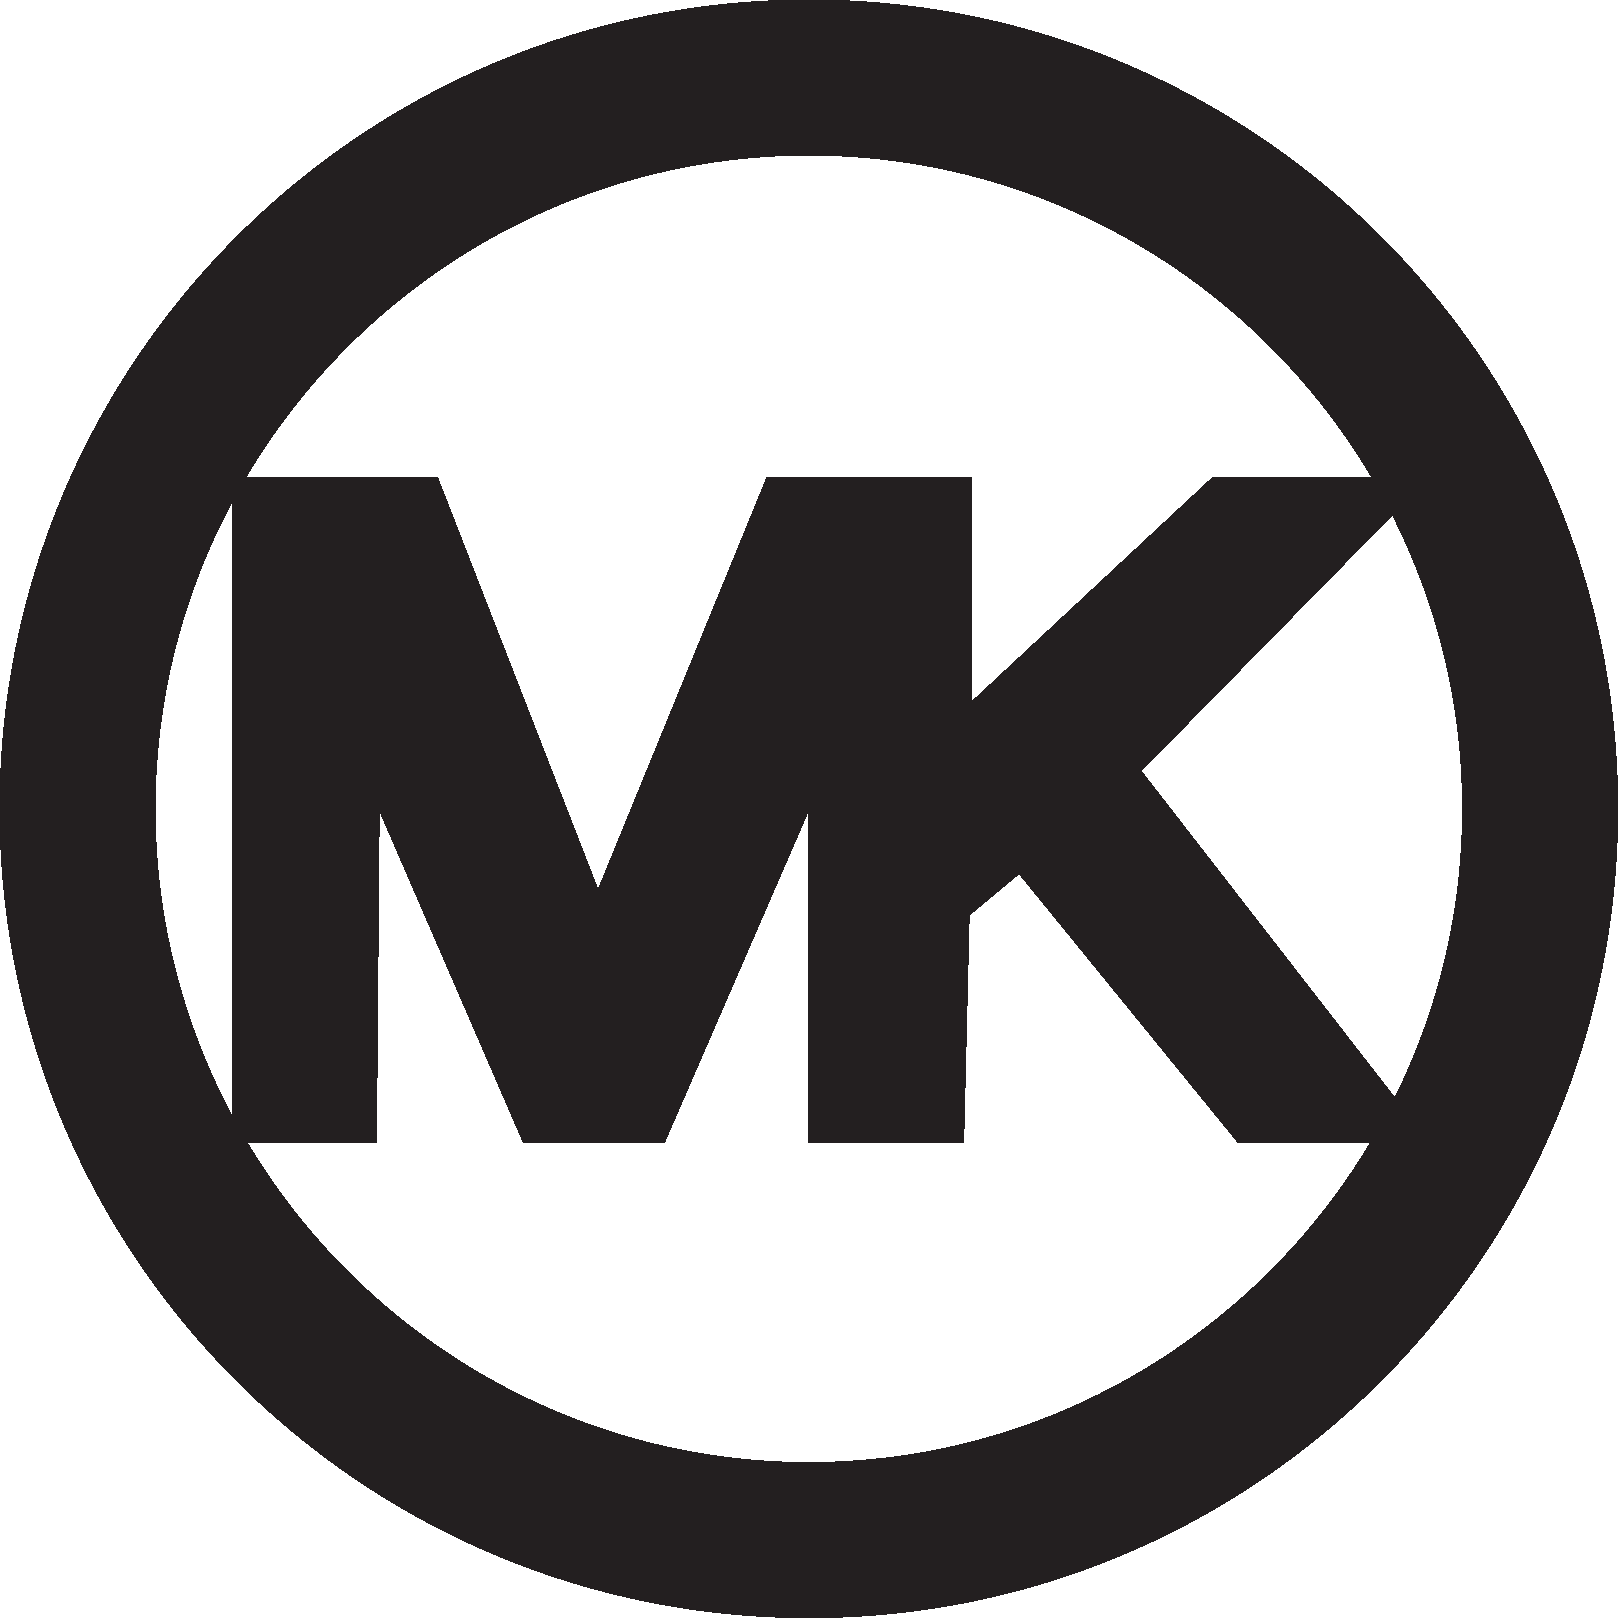 Michael Kors Logo Download Vector.